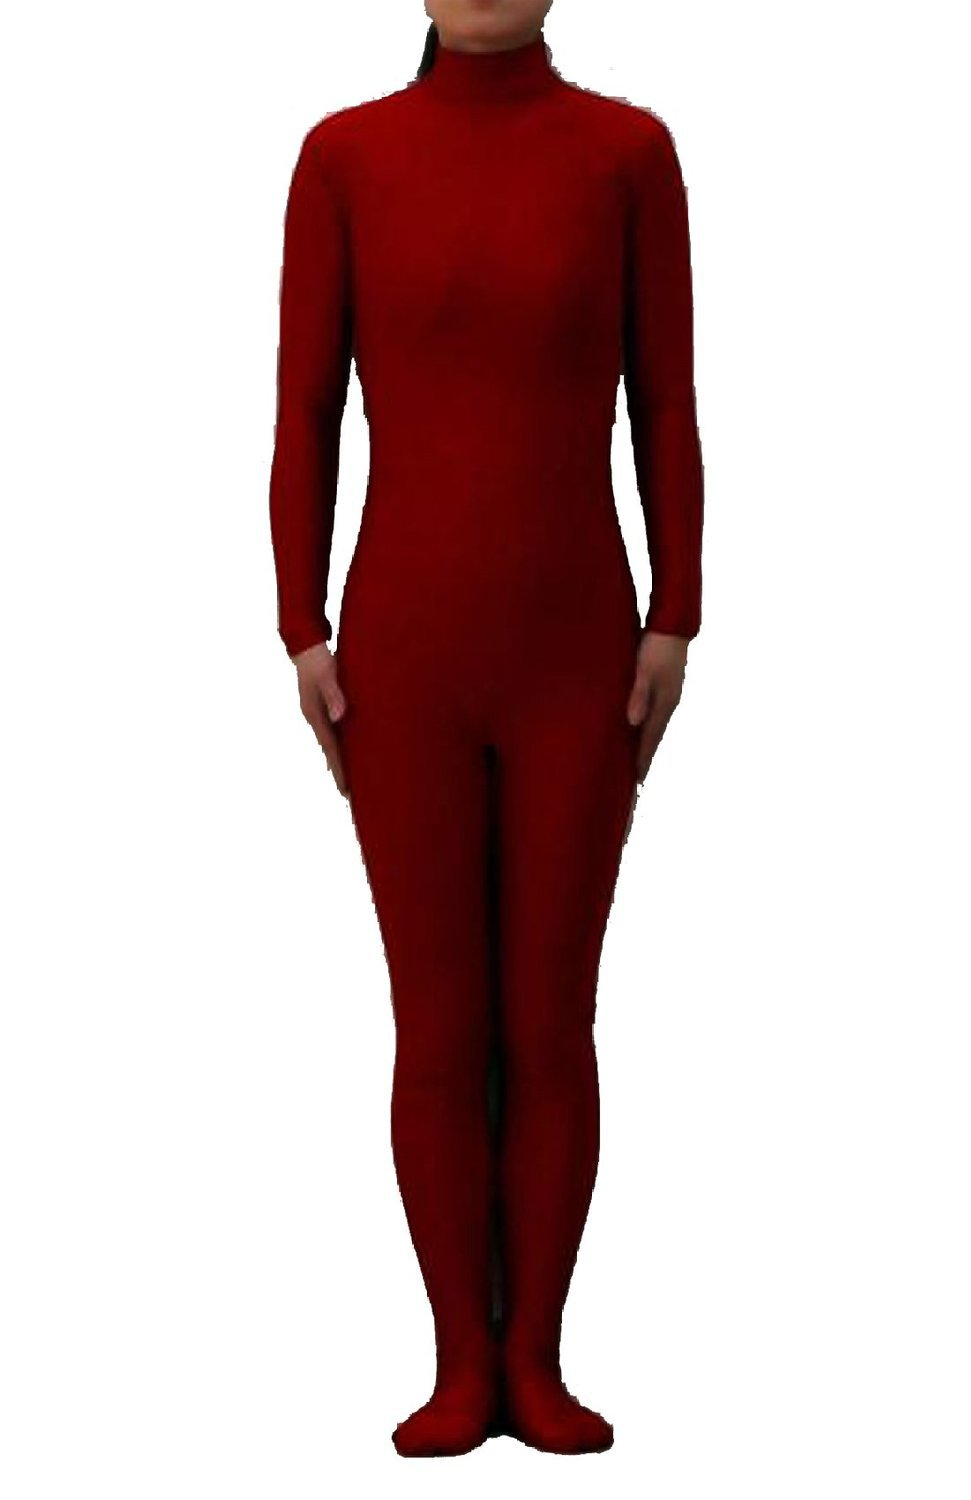 Burgundy <font><b>Sexy</b></font> Unisex <font><b>Lycra</b></font> Spandex Zentai Dancewear <font><b>Catsuit</b></font> without Hood Halloween Party Cosplay Zentai suit image